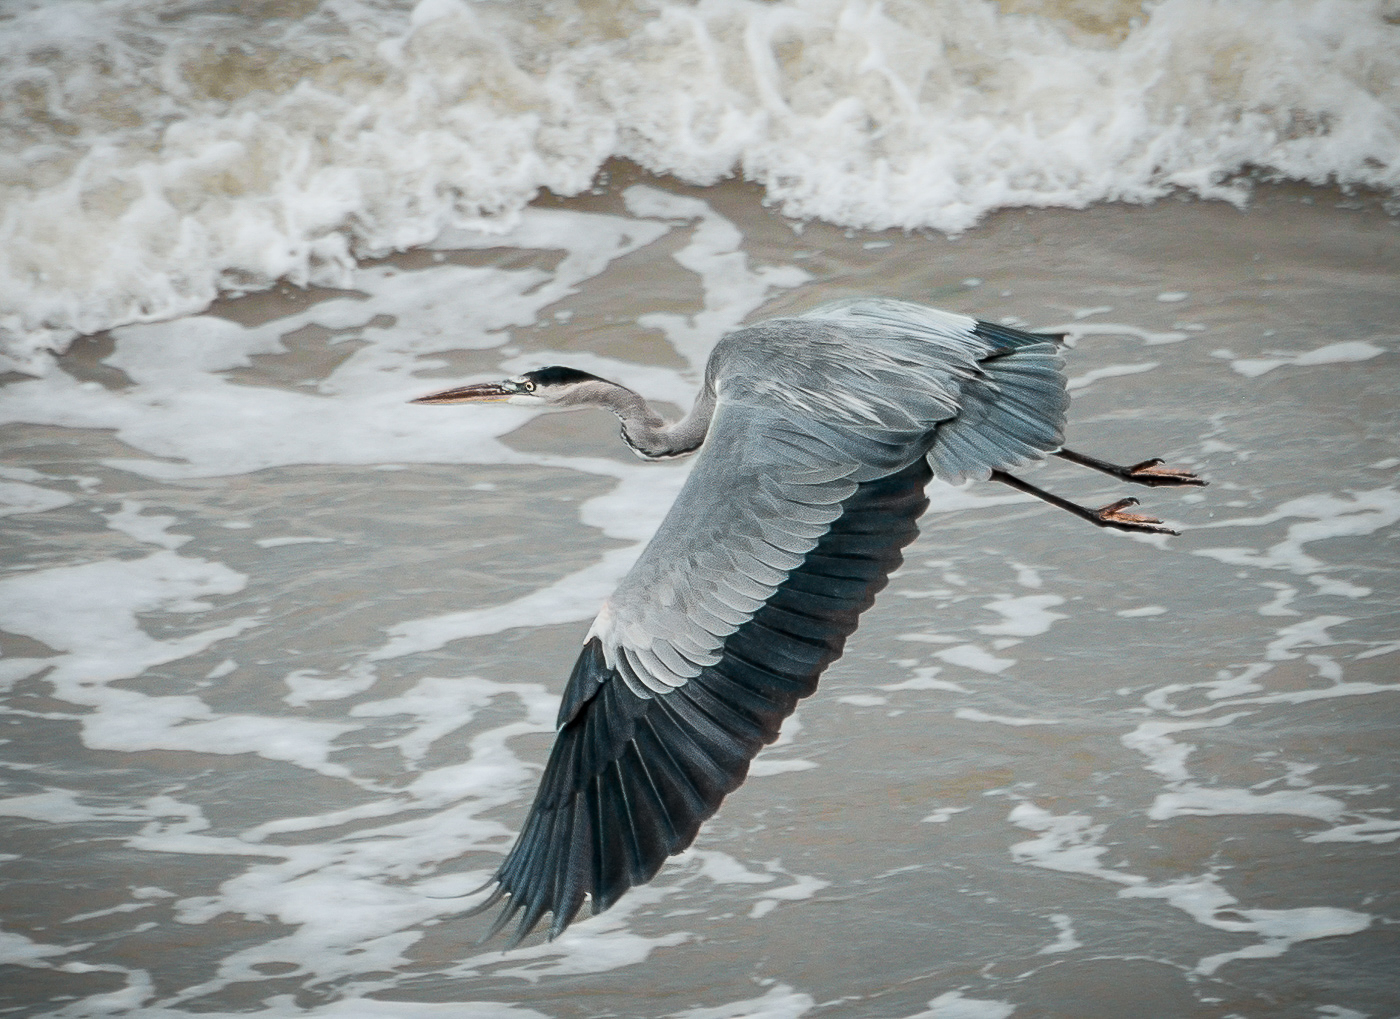 Advanced Projected Images - HC - Heron by Alan Sawyer (December 2016)